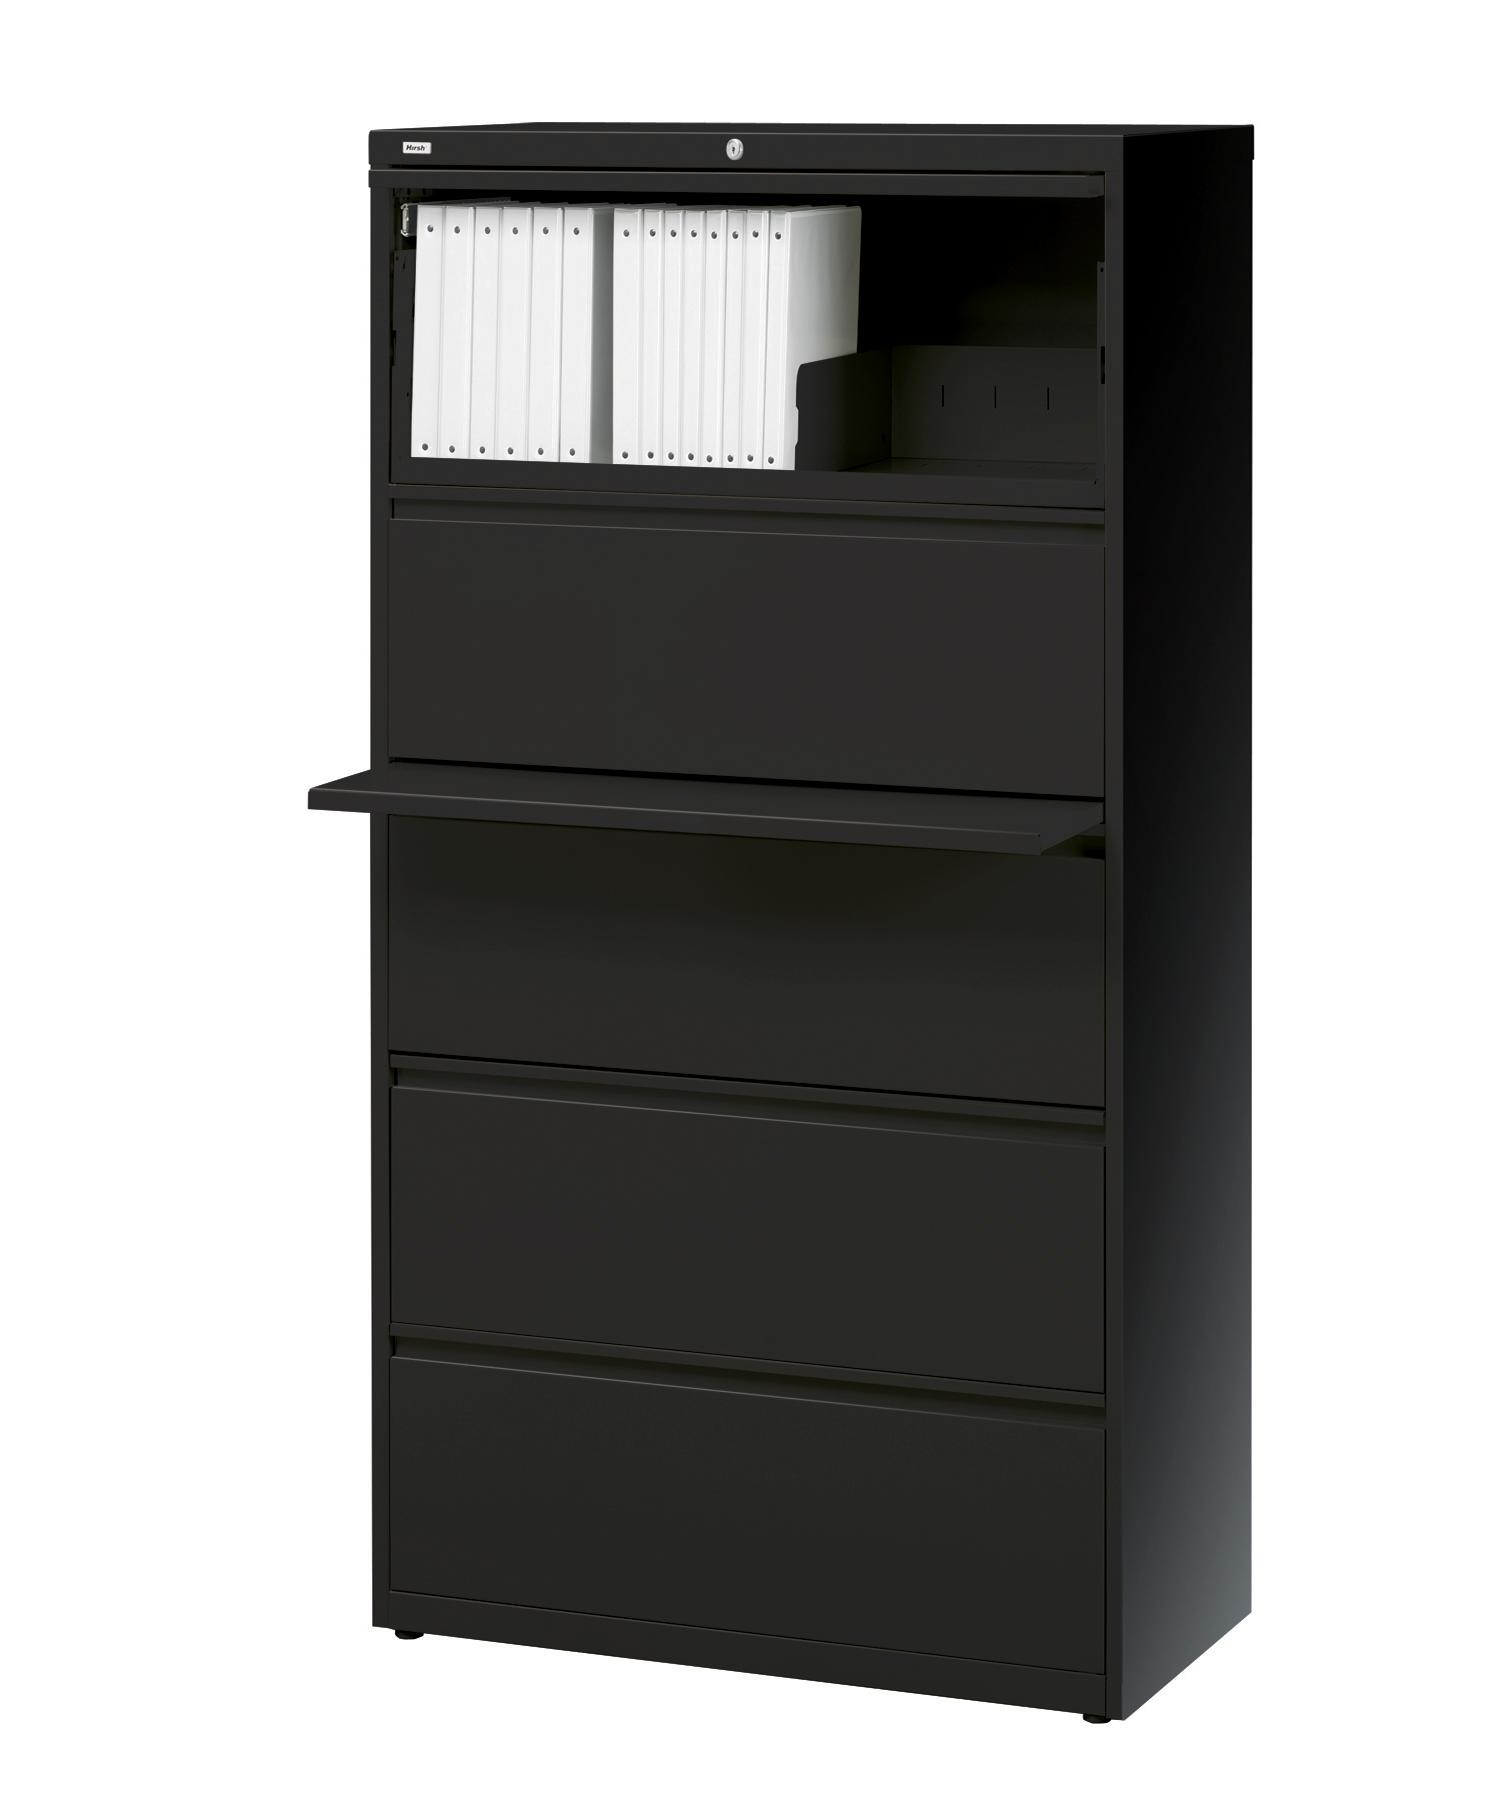 Lorell Lateral File Cabinet Hirsh Hl10000 Series 5 Drawer Commercial Lateral File Cabinet